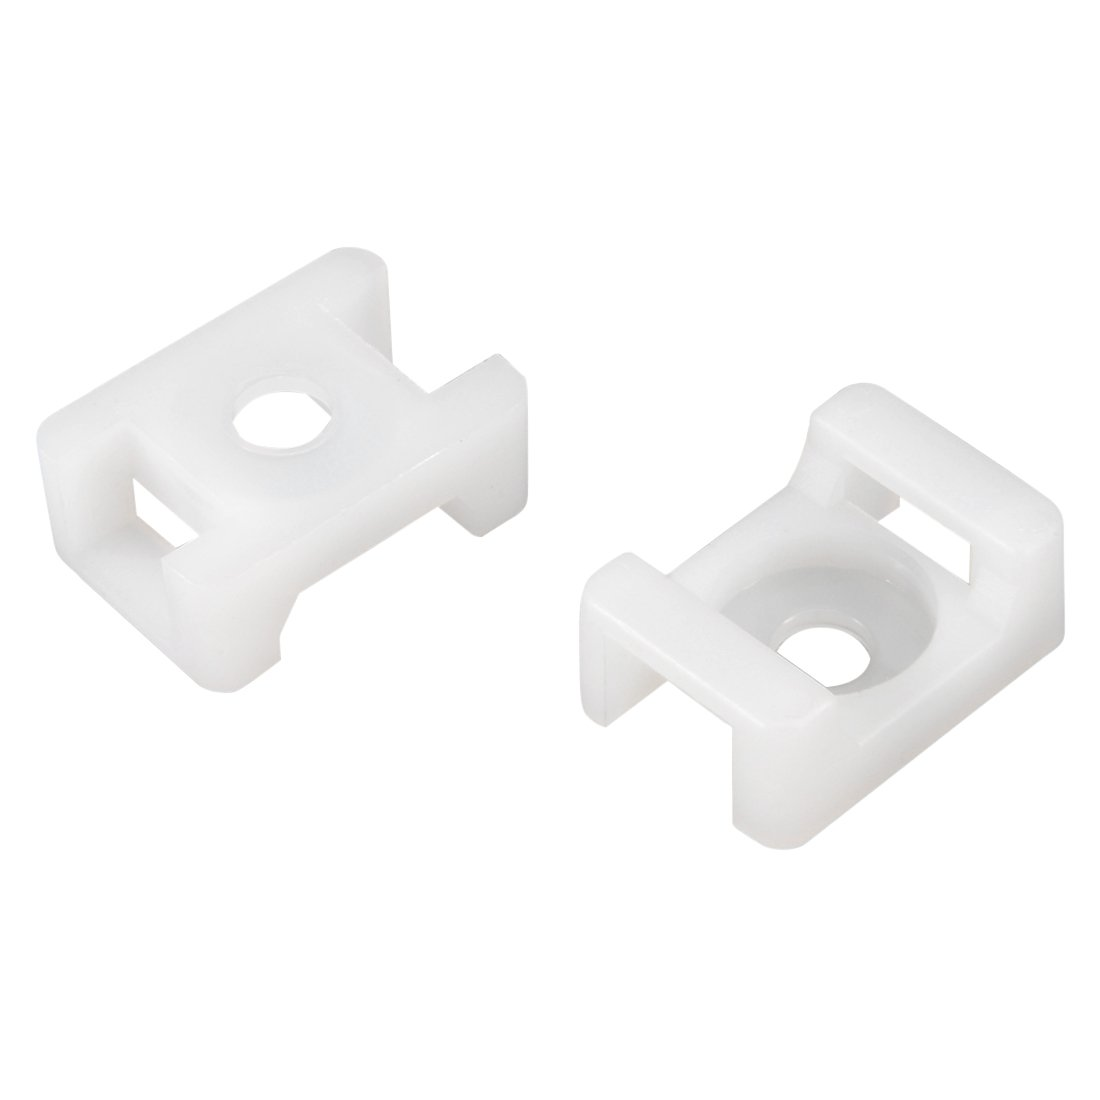 QualGear® CM2-W-100-P Cable Tie Mount, White